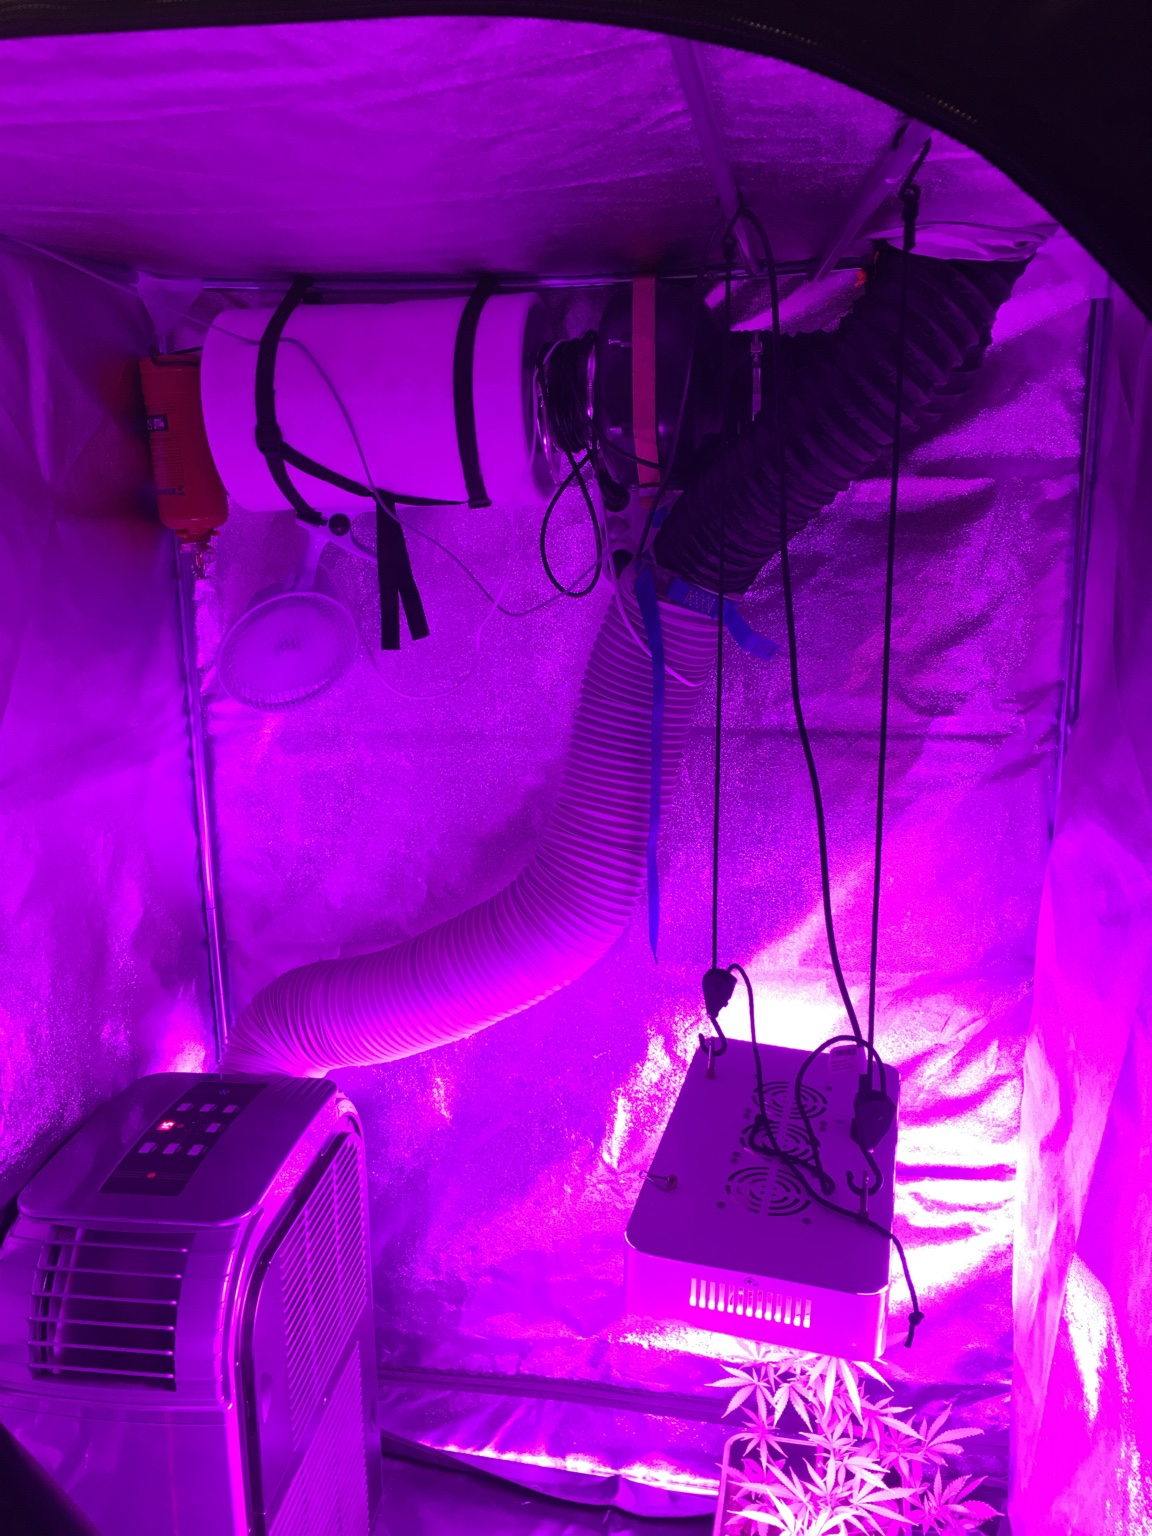 Cannabis Kweken Led Verlichting Planten Kweken Met Led Verlichting Latest With Planten